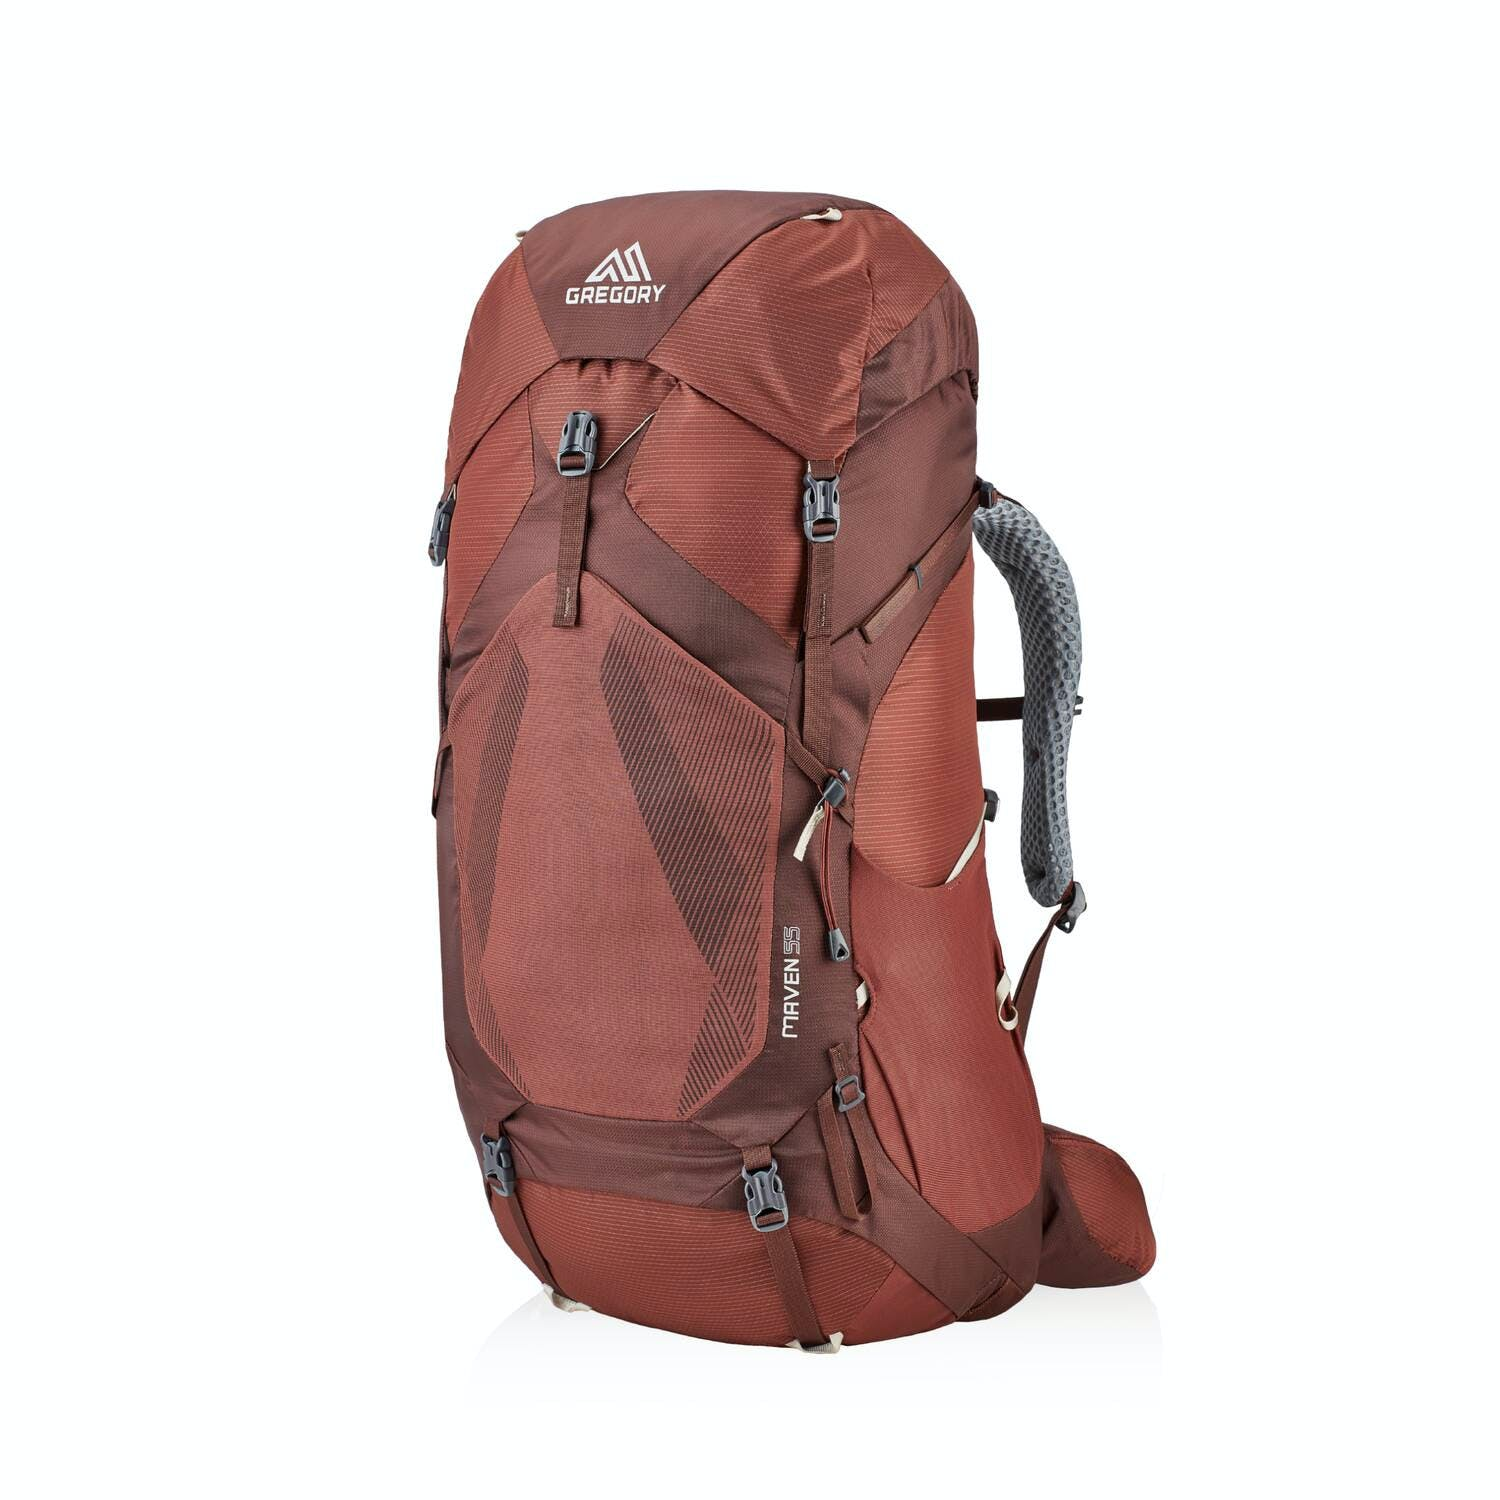 GREGORY - MAVEN 55 W - SMALL - MD - Rosewood Red